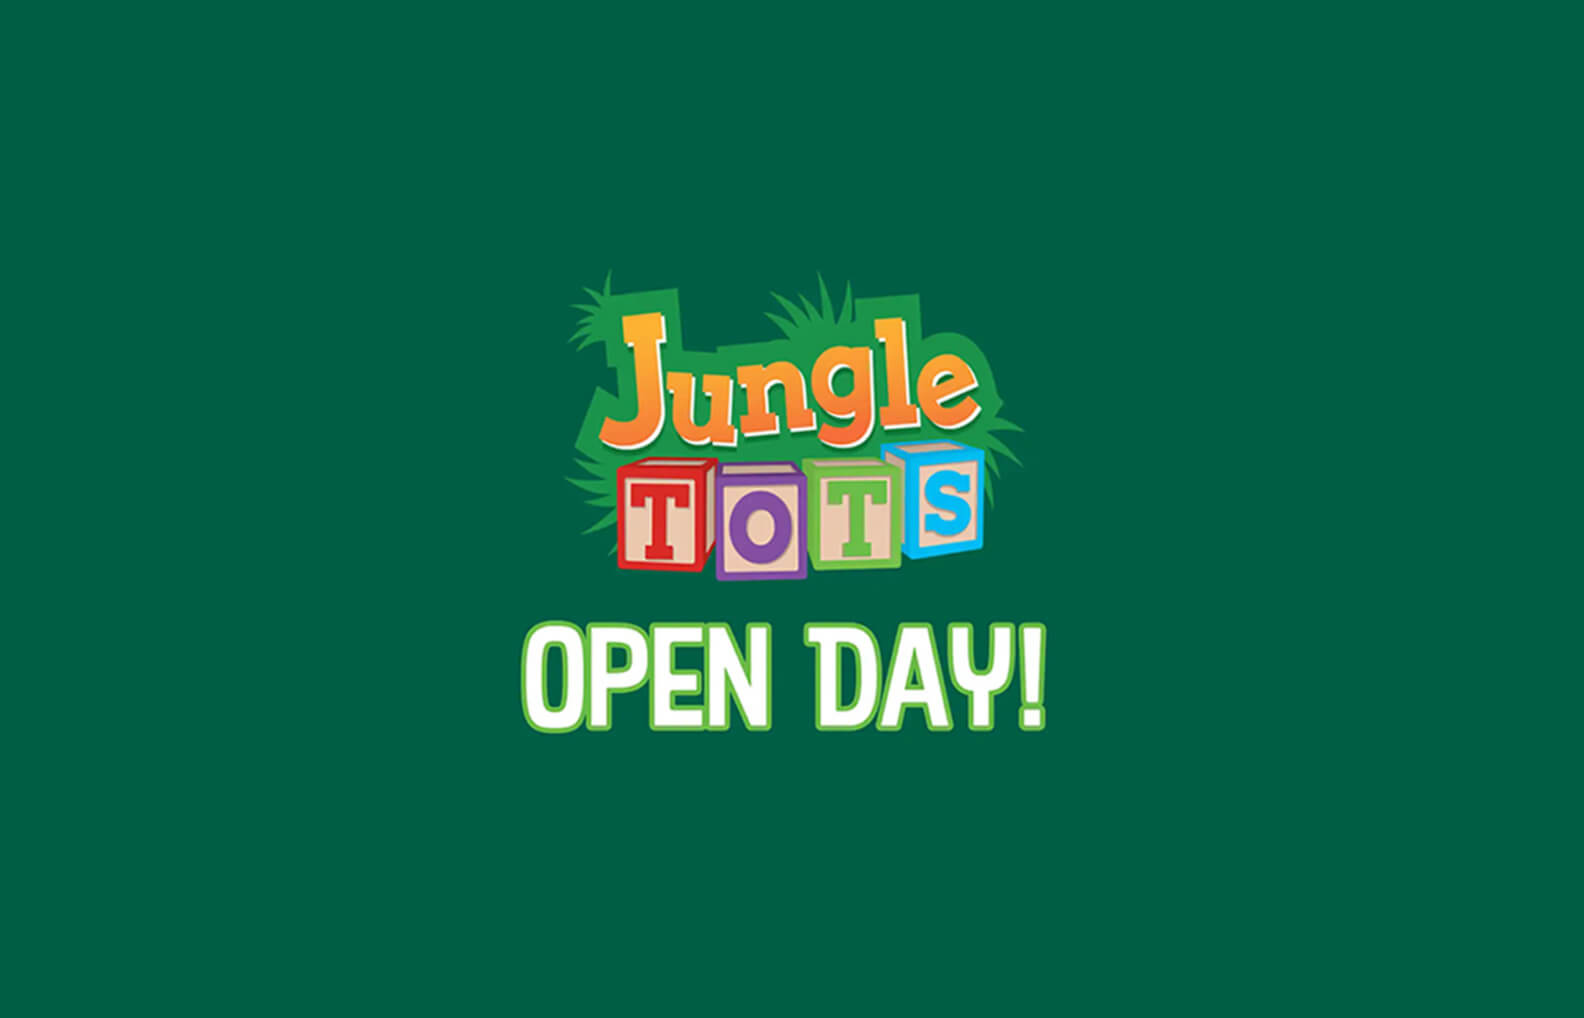 Welcome to jungle tots